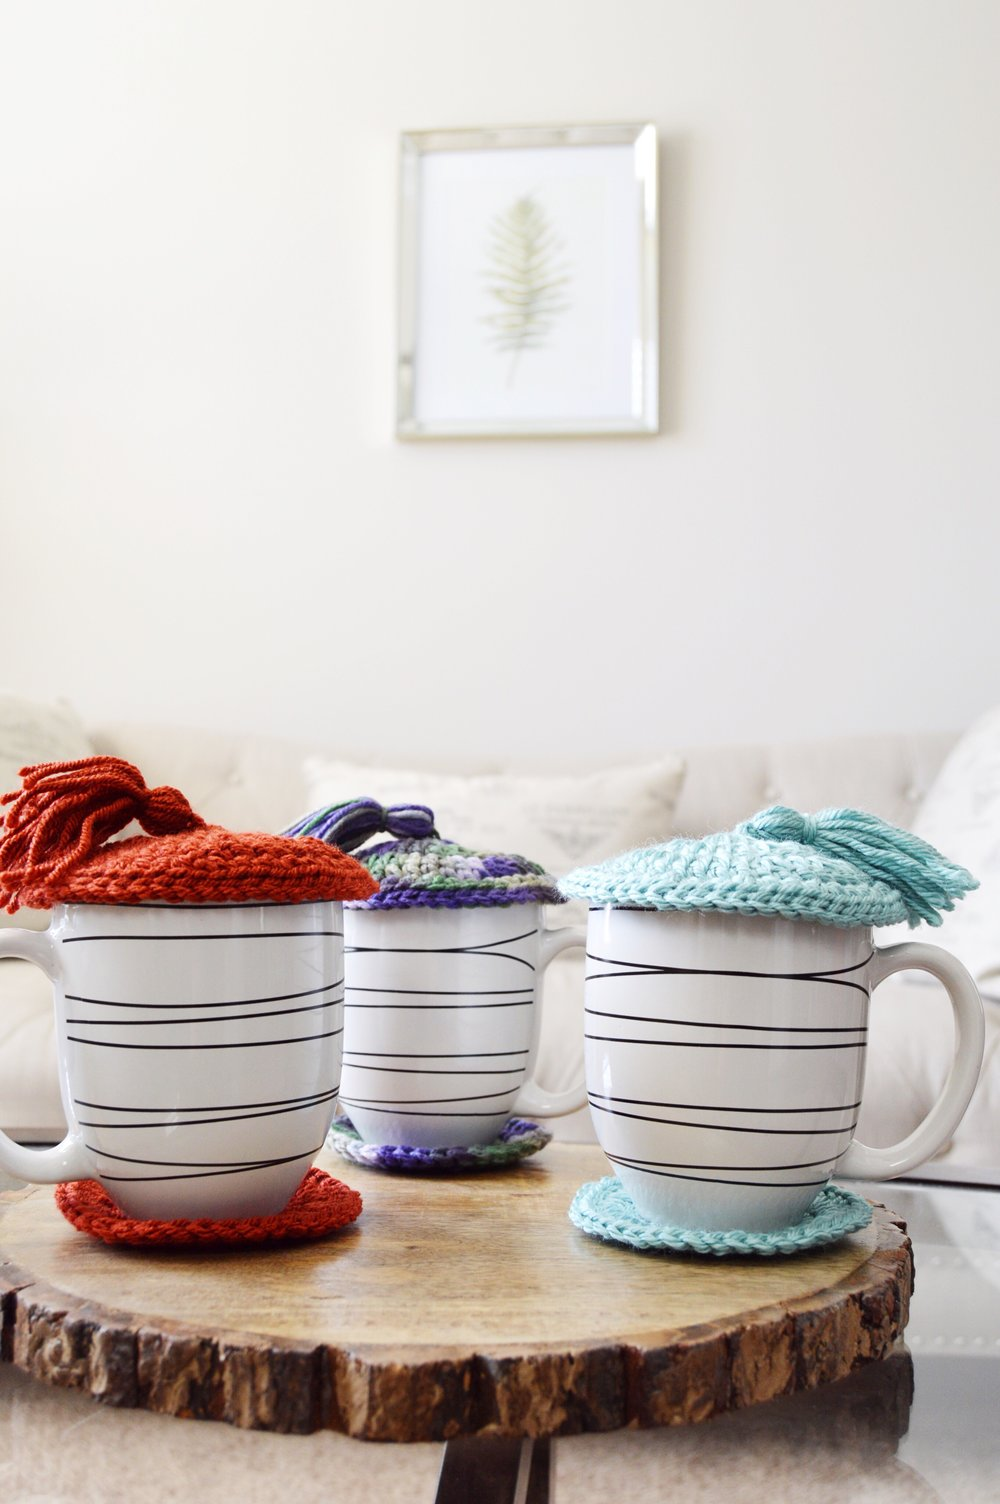 {The Magic of Coasters and Cup Lids}| Tired of your coffee or tea getting cold too quickly? These coasters and cup lids will help keep your drink warm and toasty. www.TheUrbanCountess.com